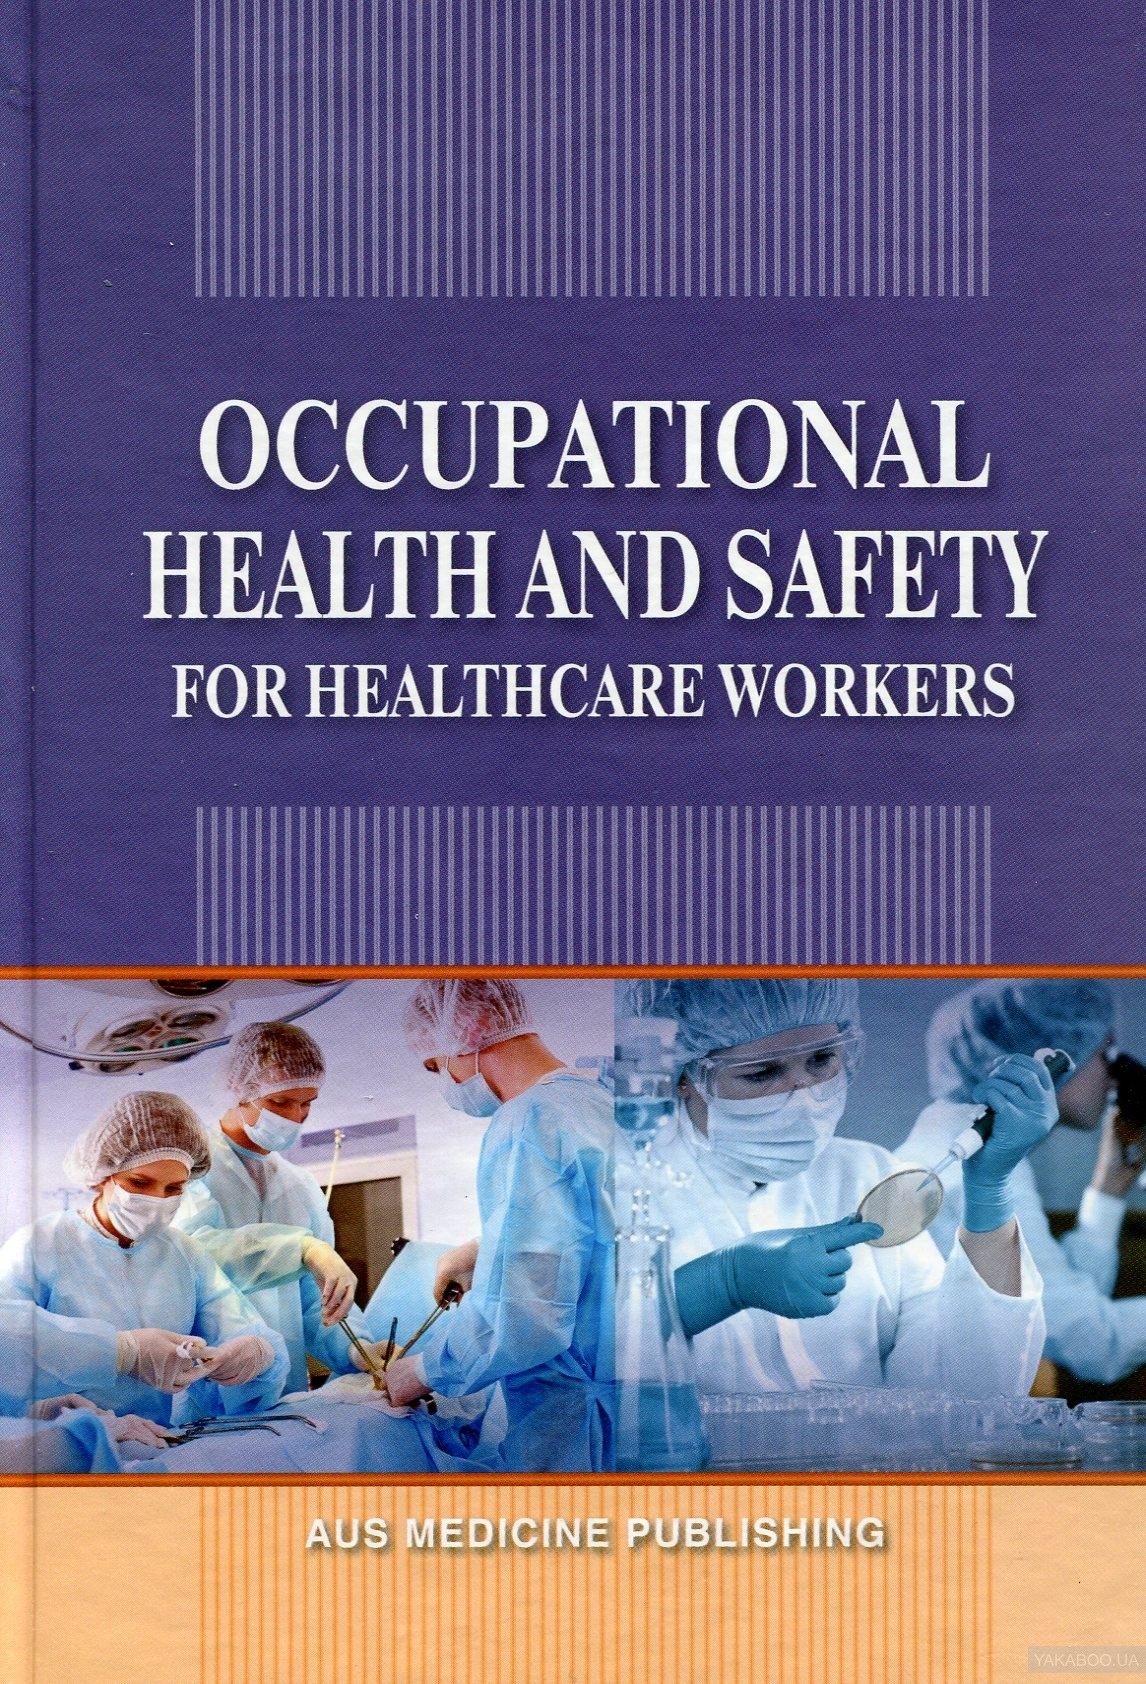 Occupational Health and Safety for Healthcare Workers: Навчальний посібник для мед. ВНЗ ІV р.а. фото